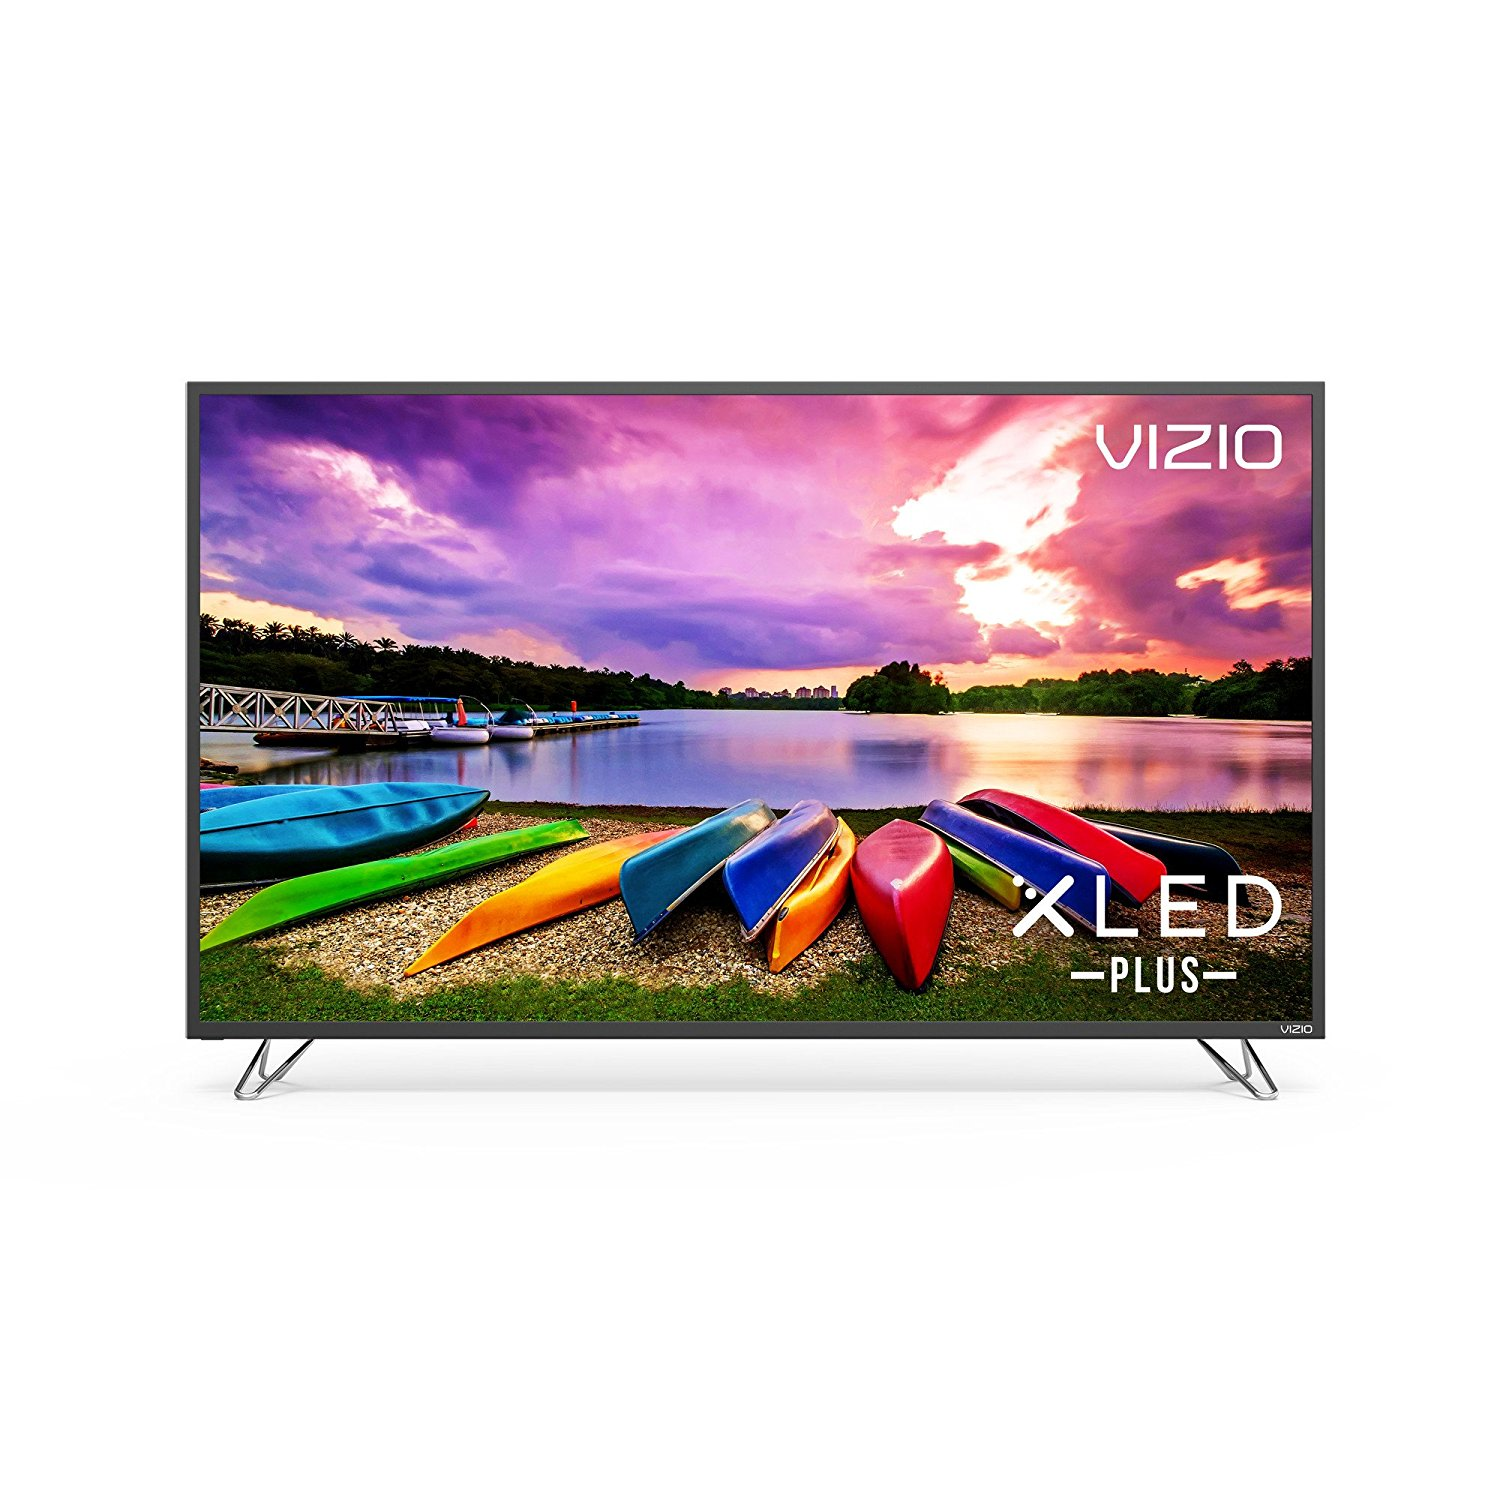 An image of VIZIO M55-E0 55-Inch HDR Flat Screen 4K LED 120Hz TV with VIZIO Clear Action 360